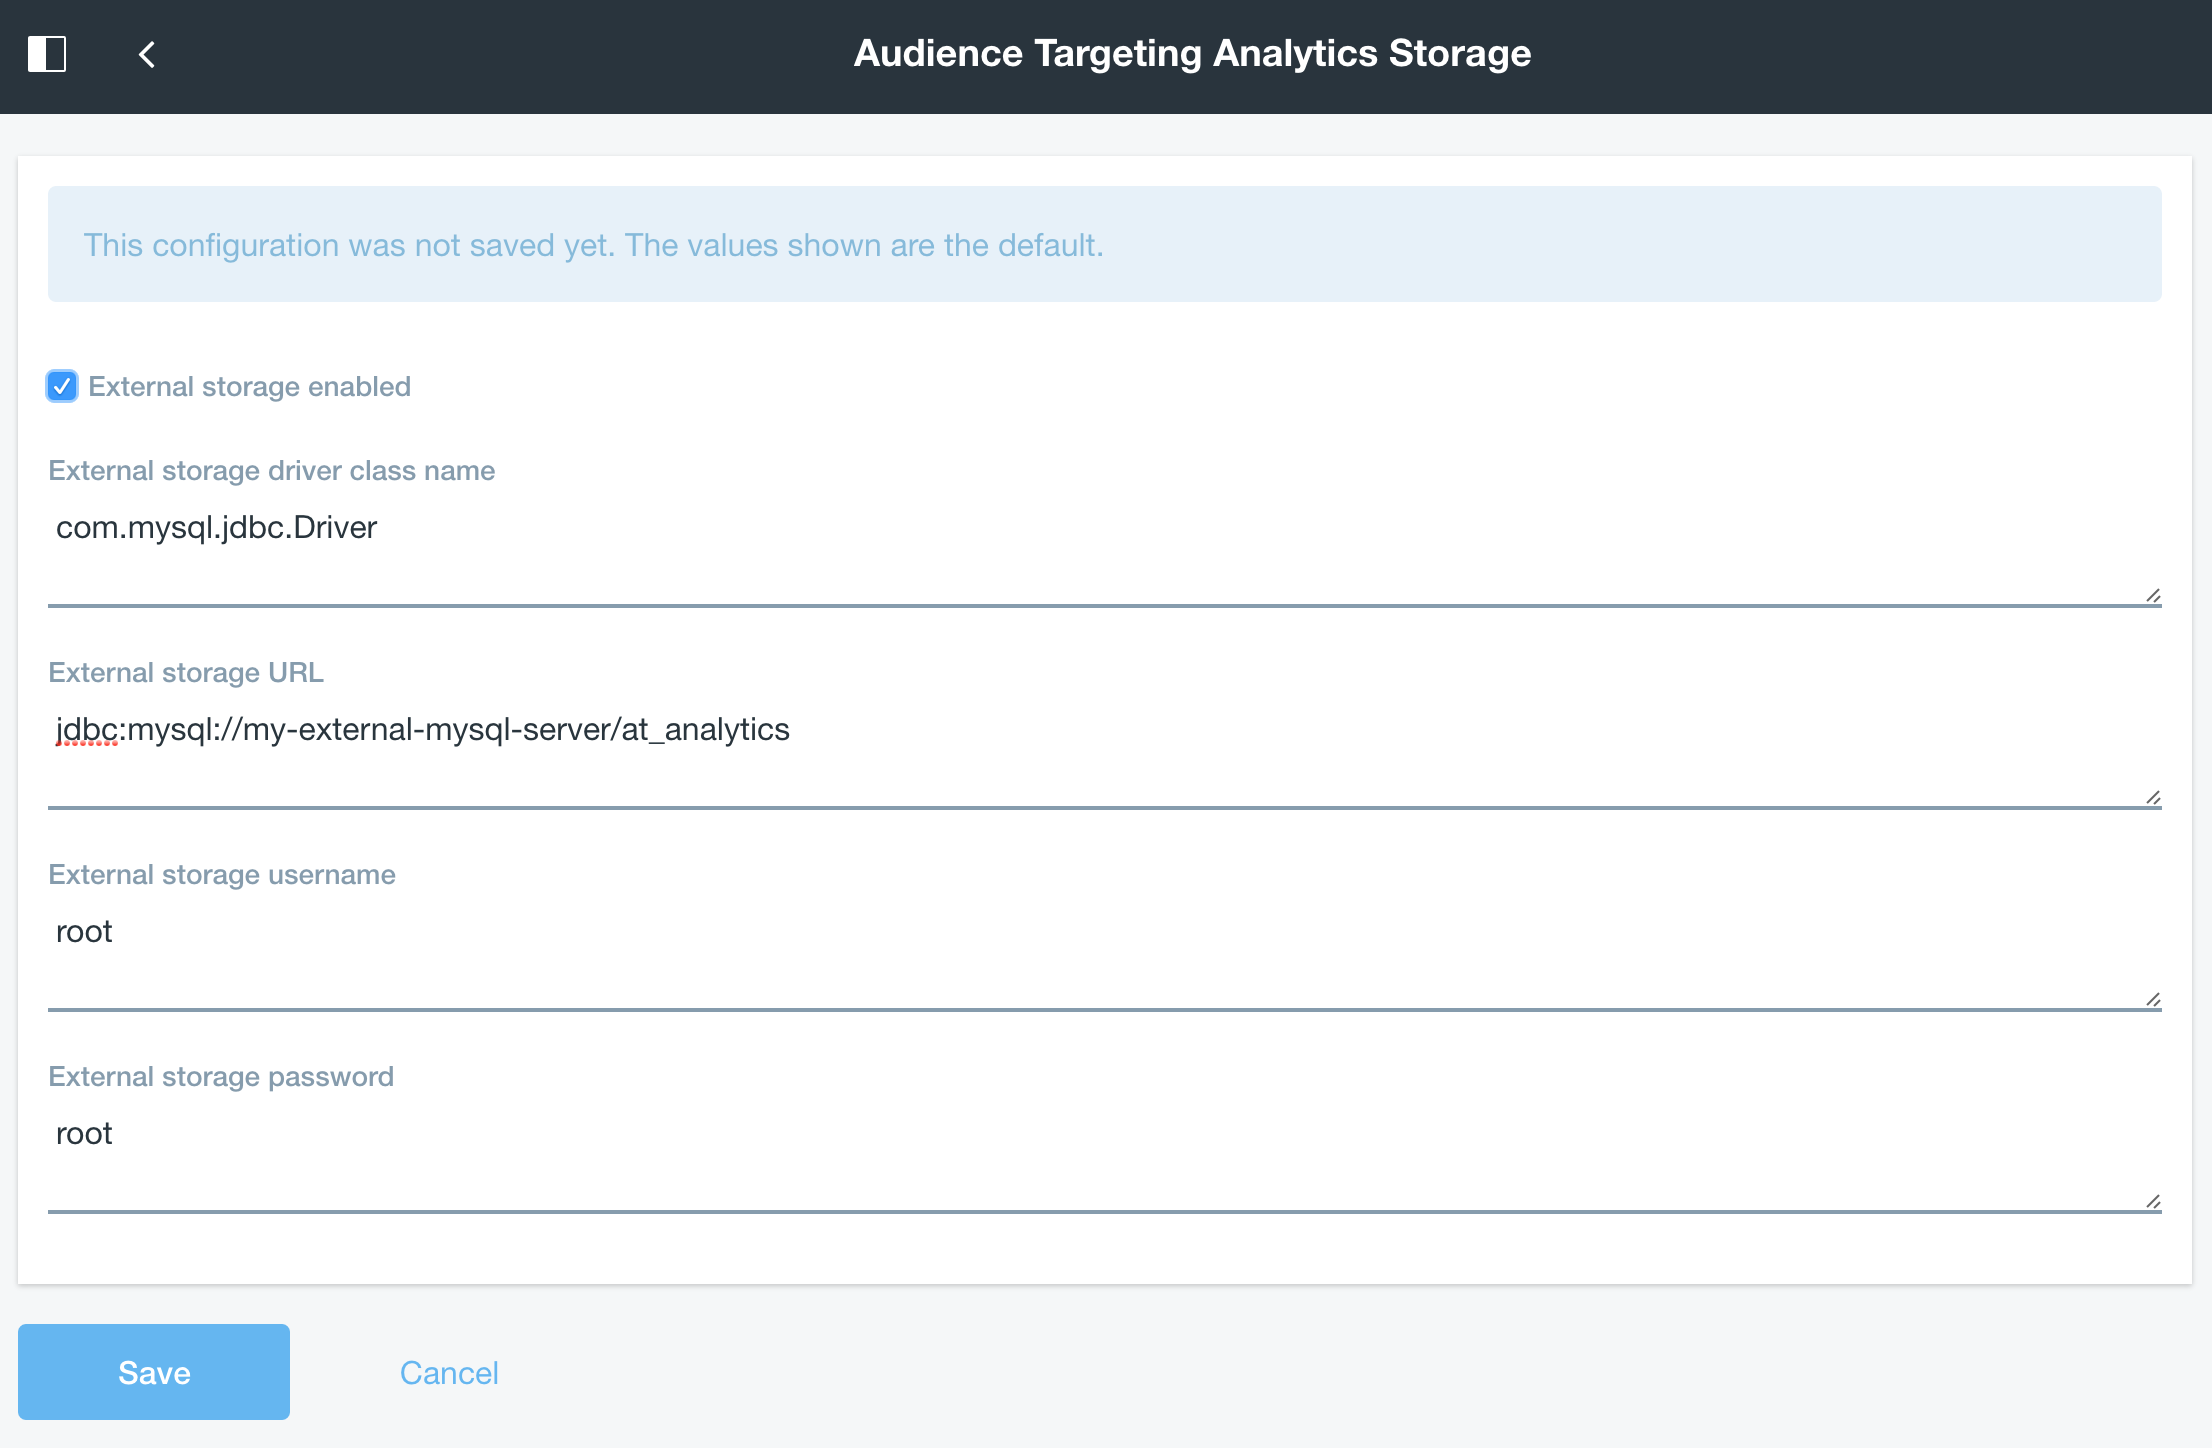 Figure 5: By filling out the external storage requirements, you configure your Audience Targeting analytics data to be stored in an alternative database schema.